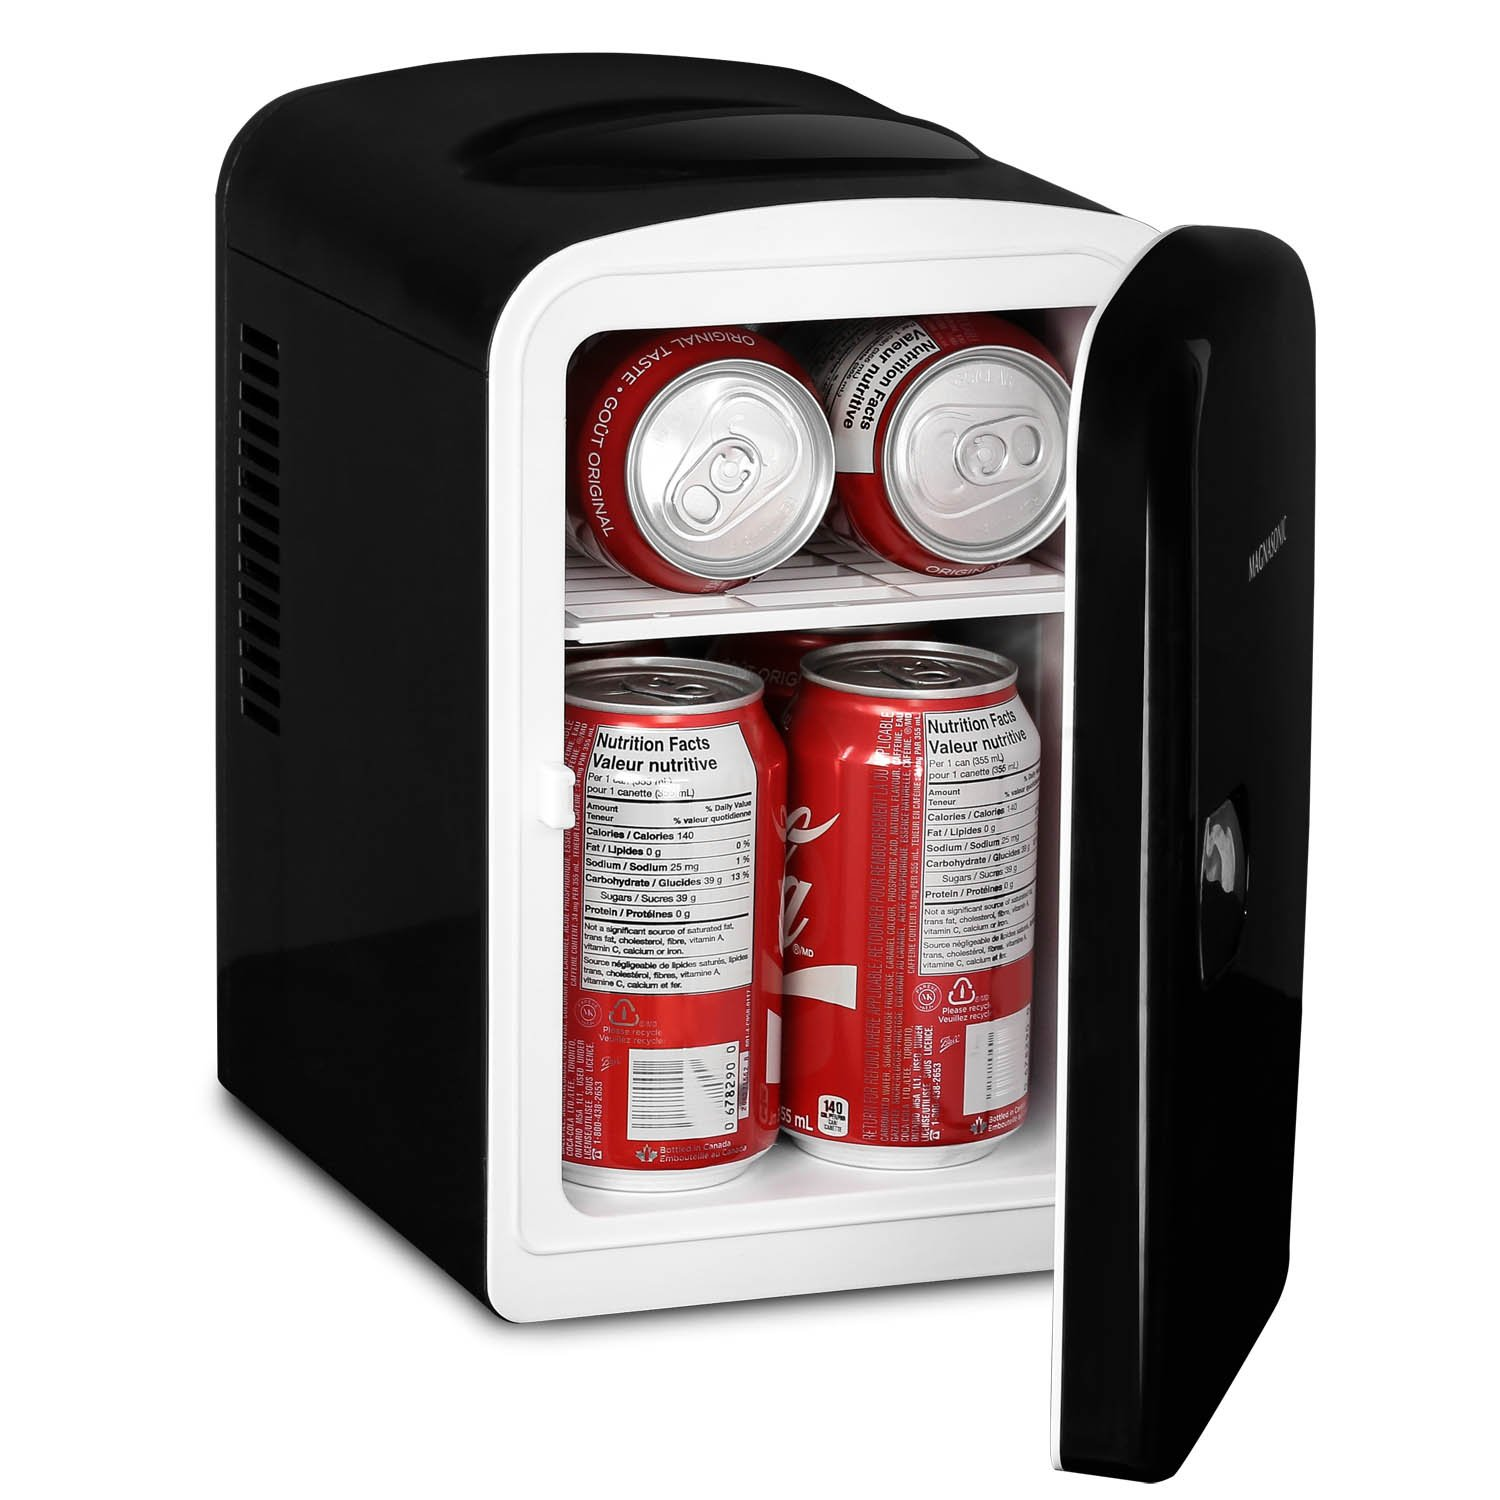 magnasonic-portable-6-can-mini-fridge-cooler-&-warmer,-4l-capacity,-fully-insulated,-thermoelectric,-110v-&-12v-ac_dc-power-for-home,-office,-car,-rv,-boat-(mf41) by magnasonic